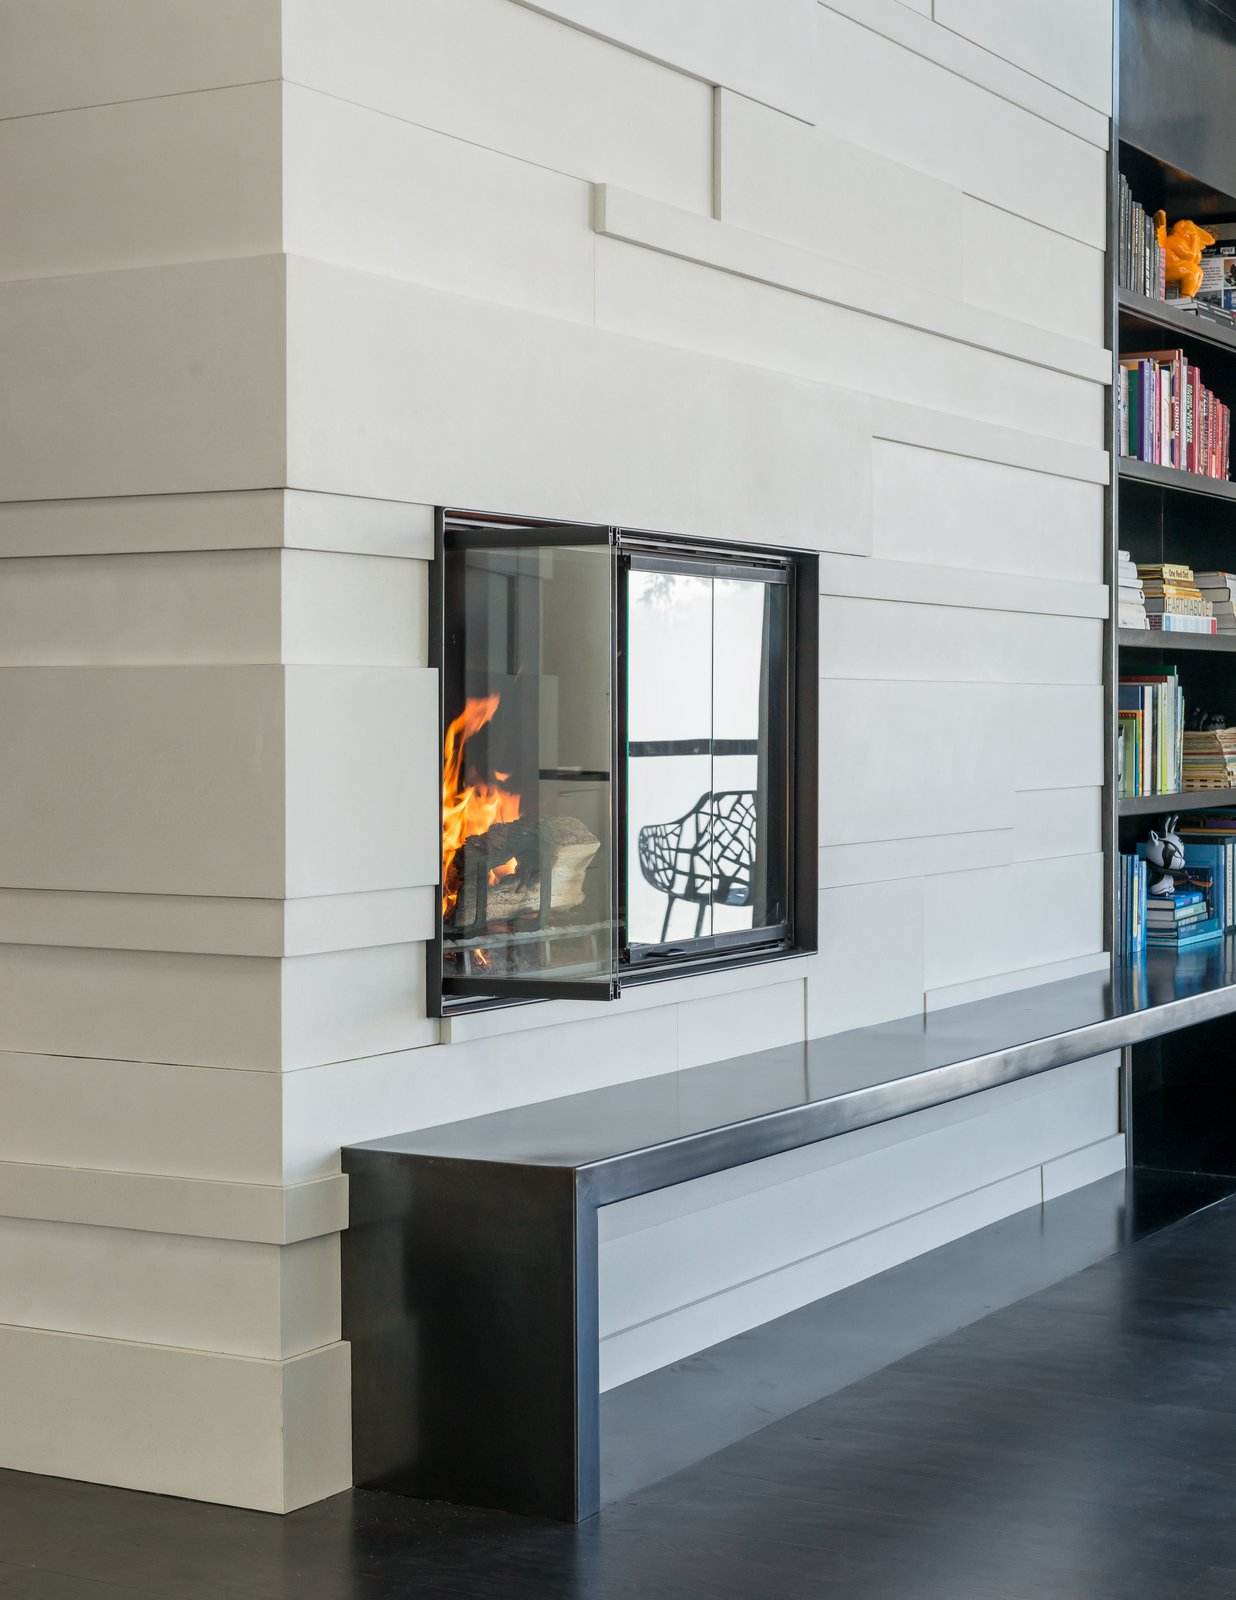 Custom concrete tiles and a steel hearth complete the fireplace surround.